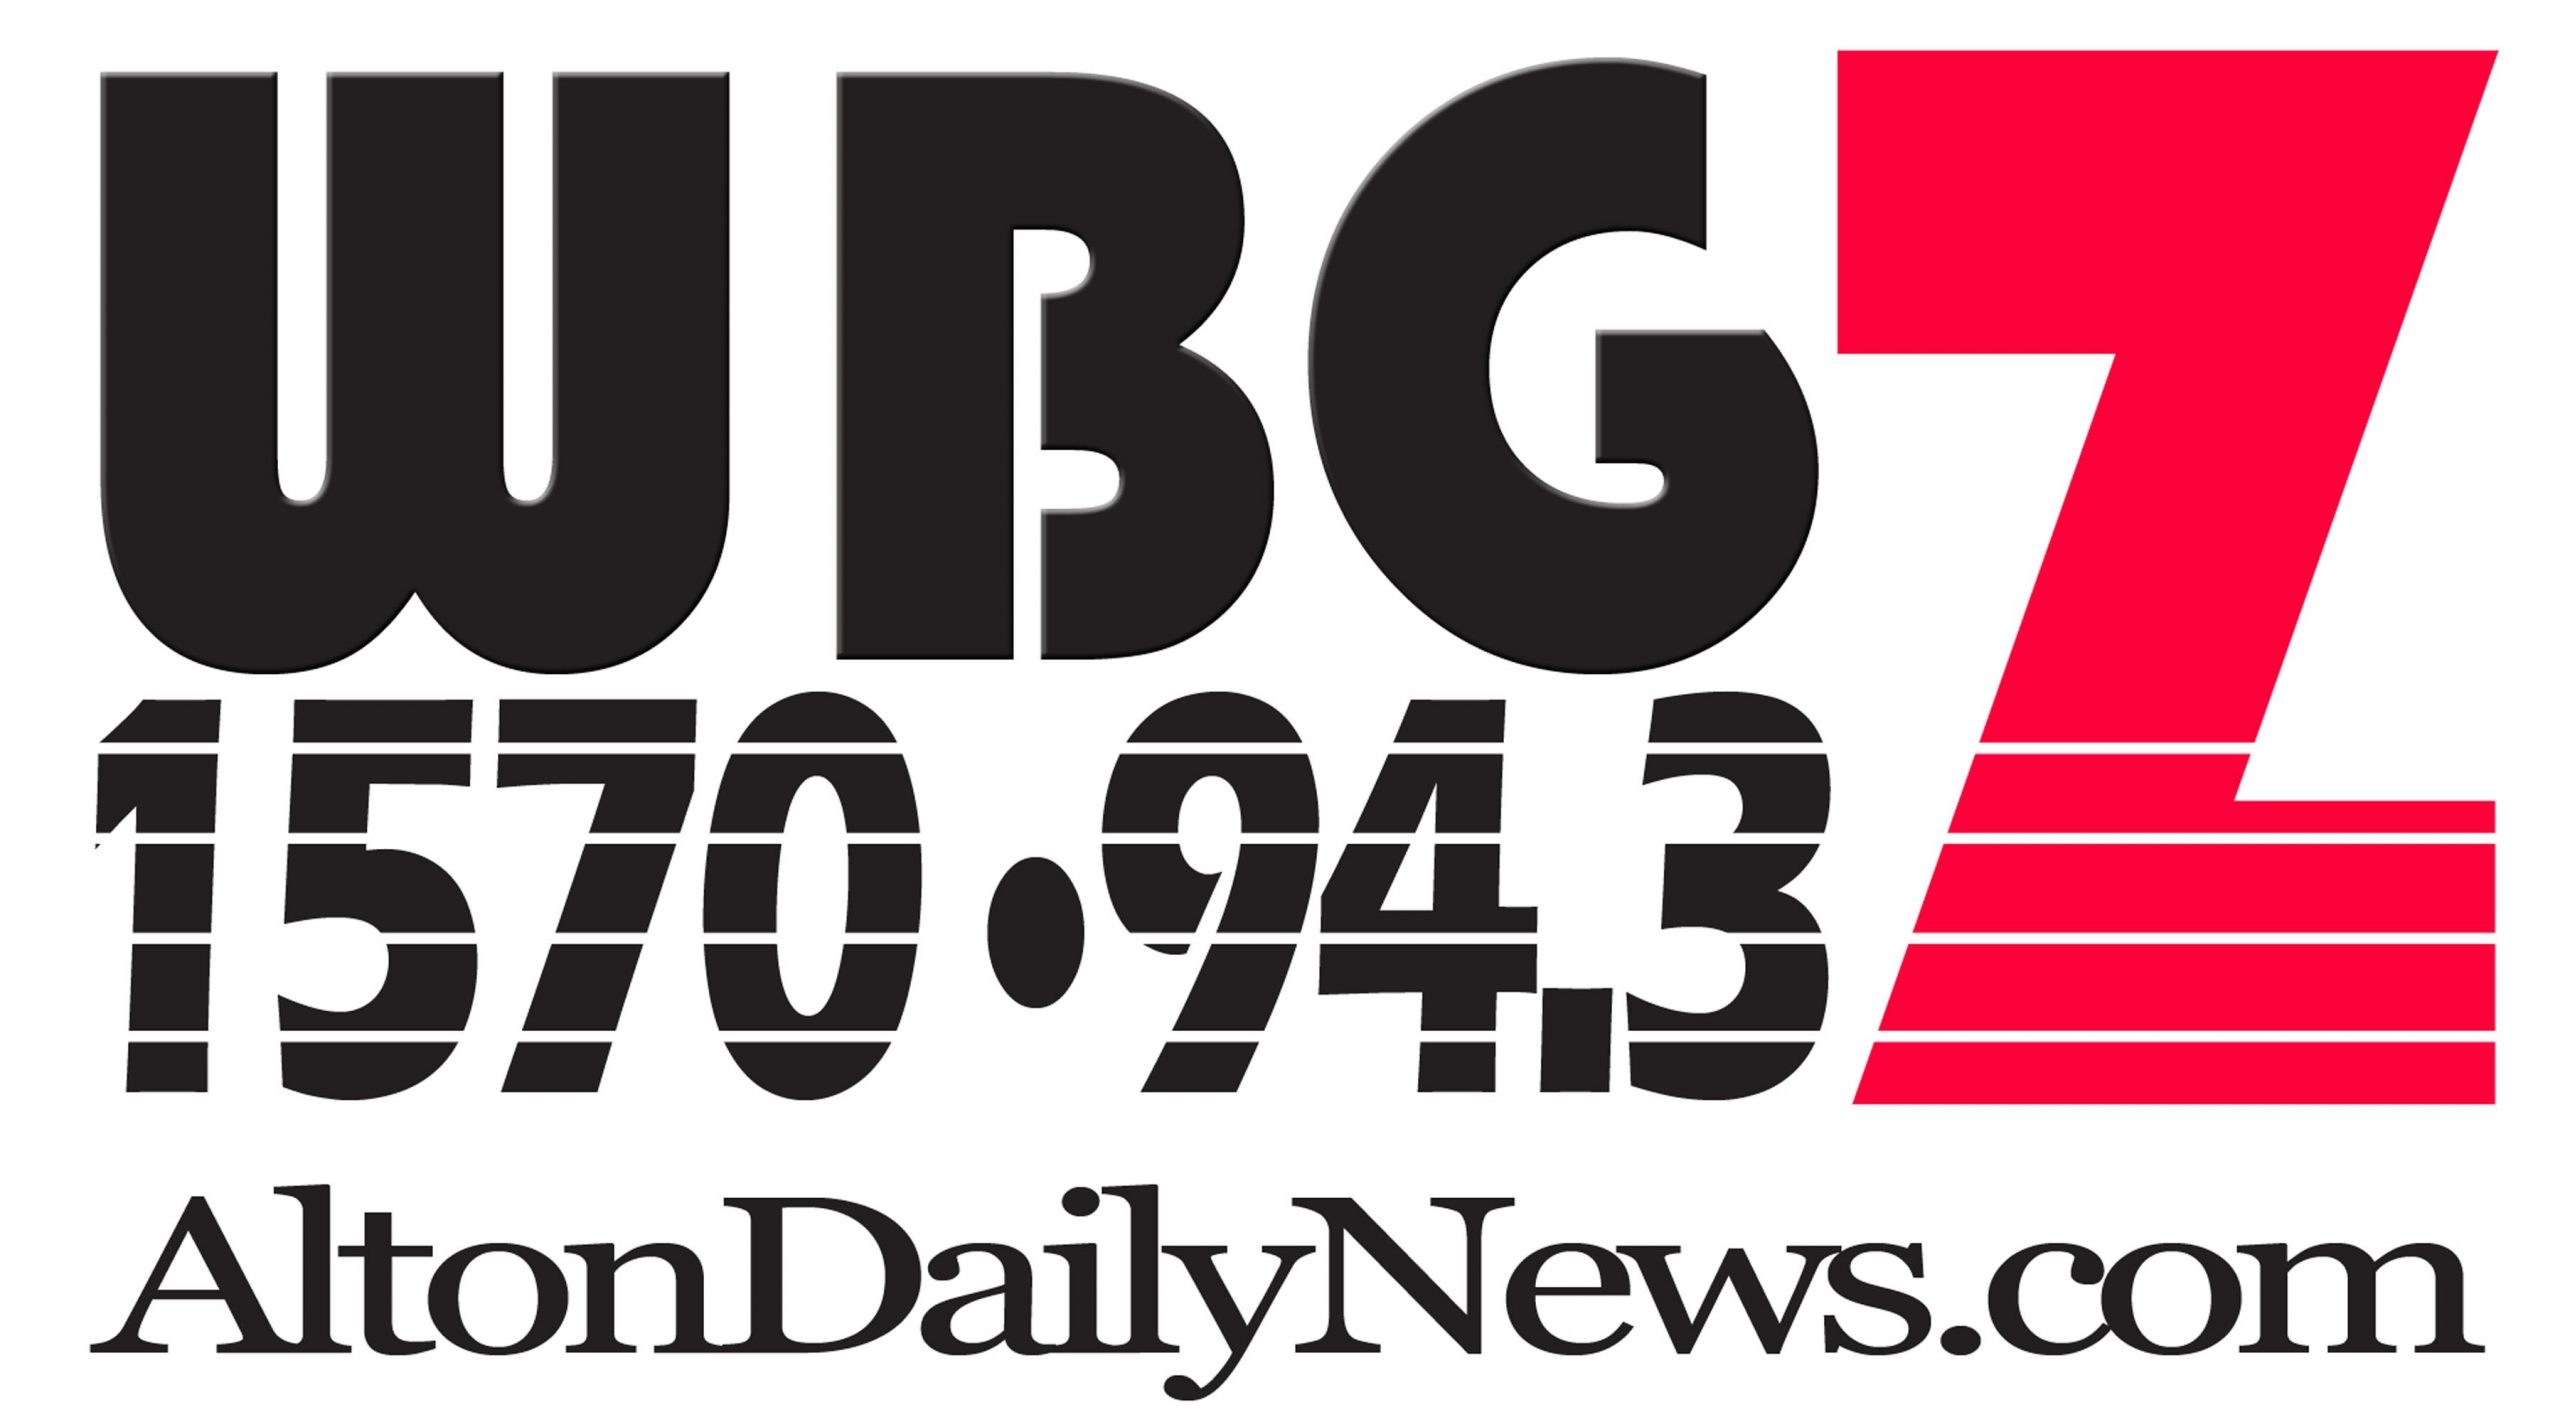 WBGZ 1570AM 94.3FM in Alton, Illinois